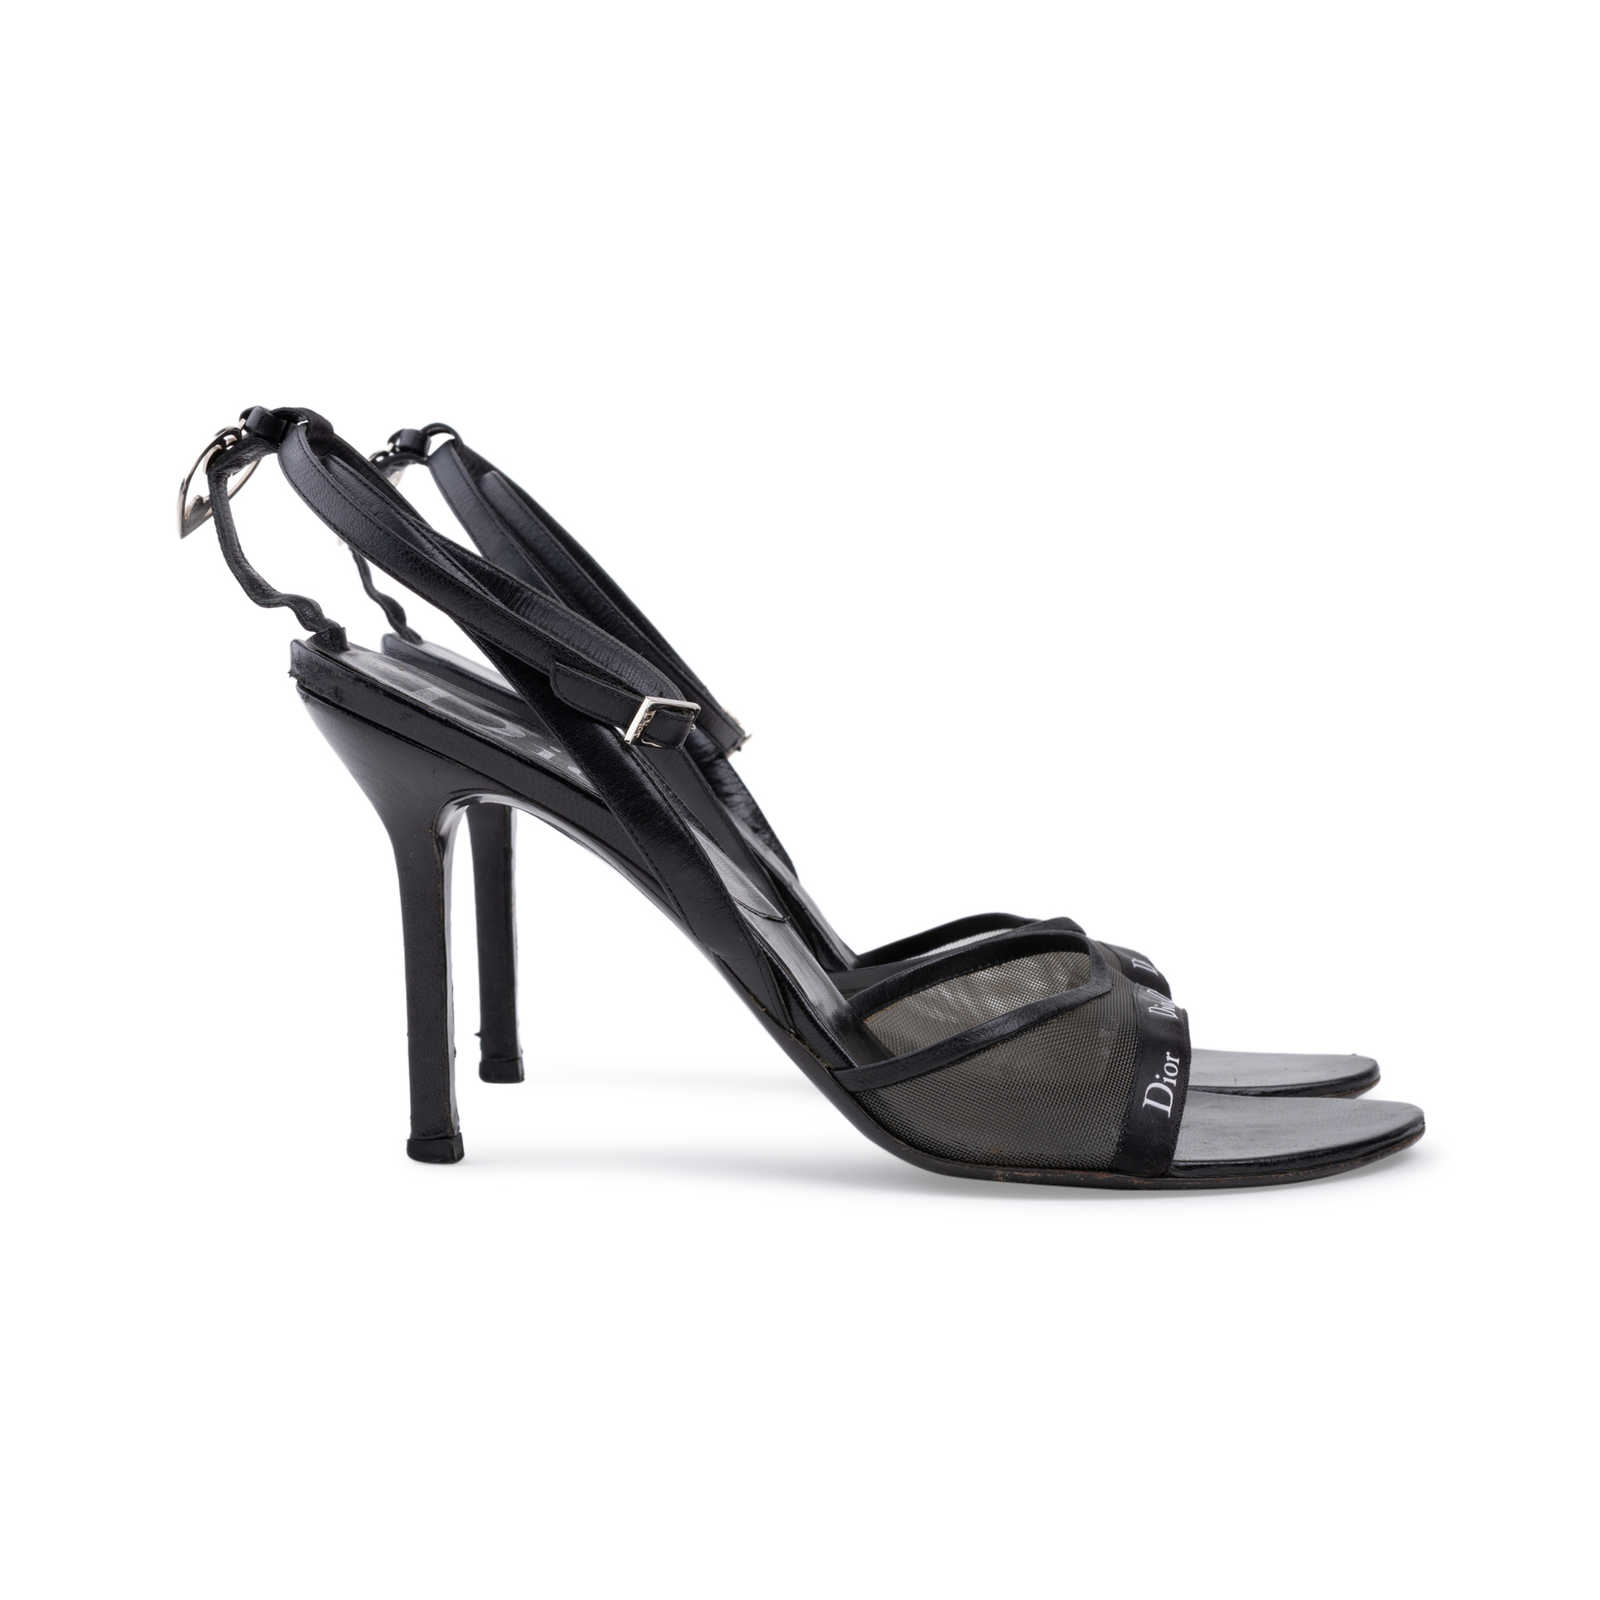 bcf93f45ada ... Authentic Second Hand Christian Dior Black Strappy Sandals  (PSS-625-00004) ...